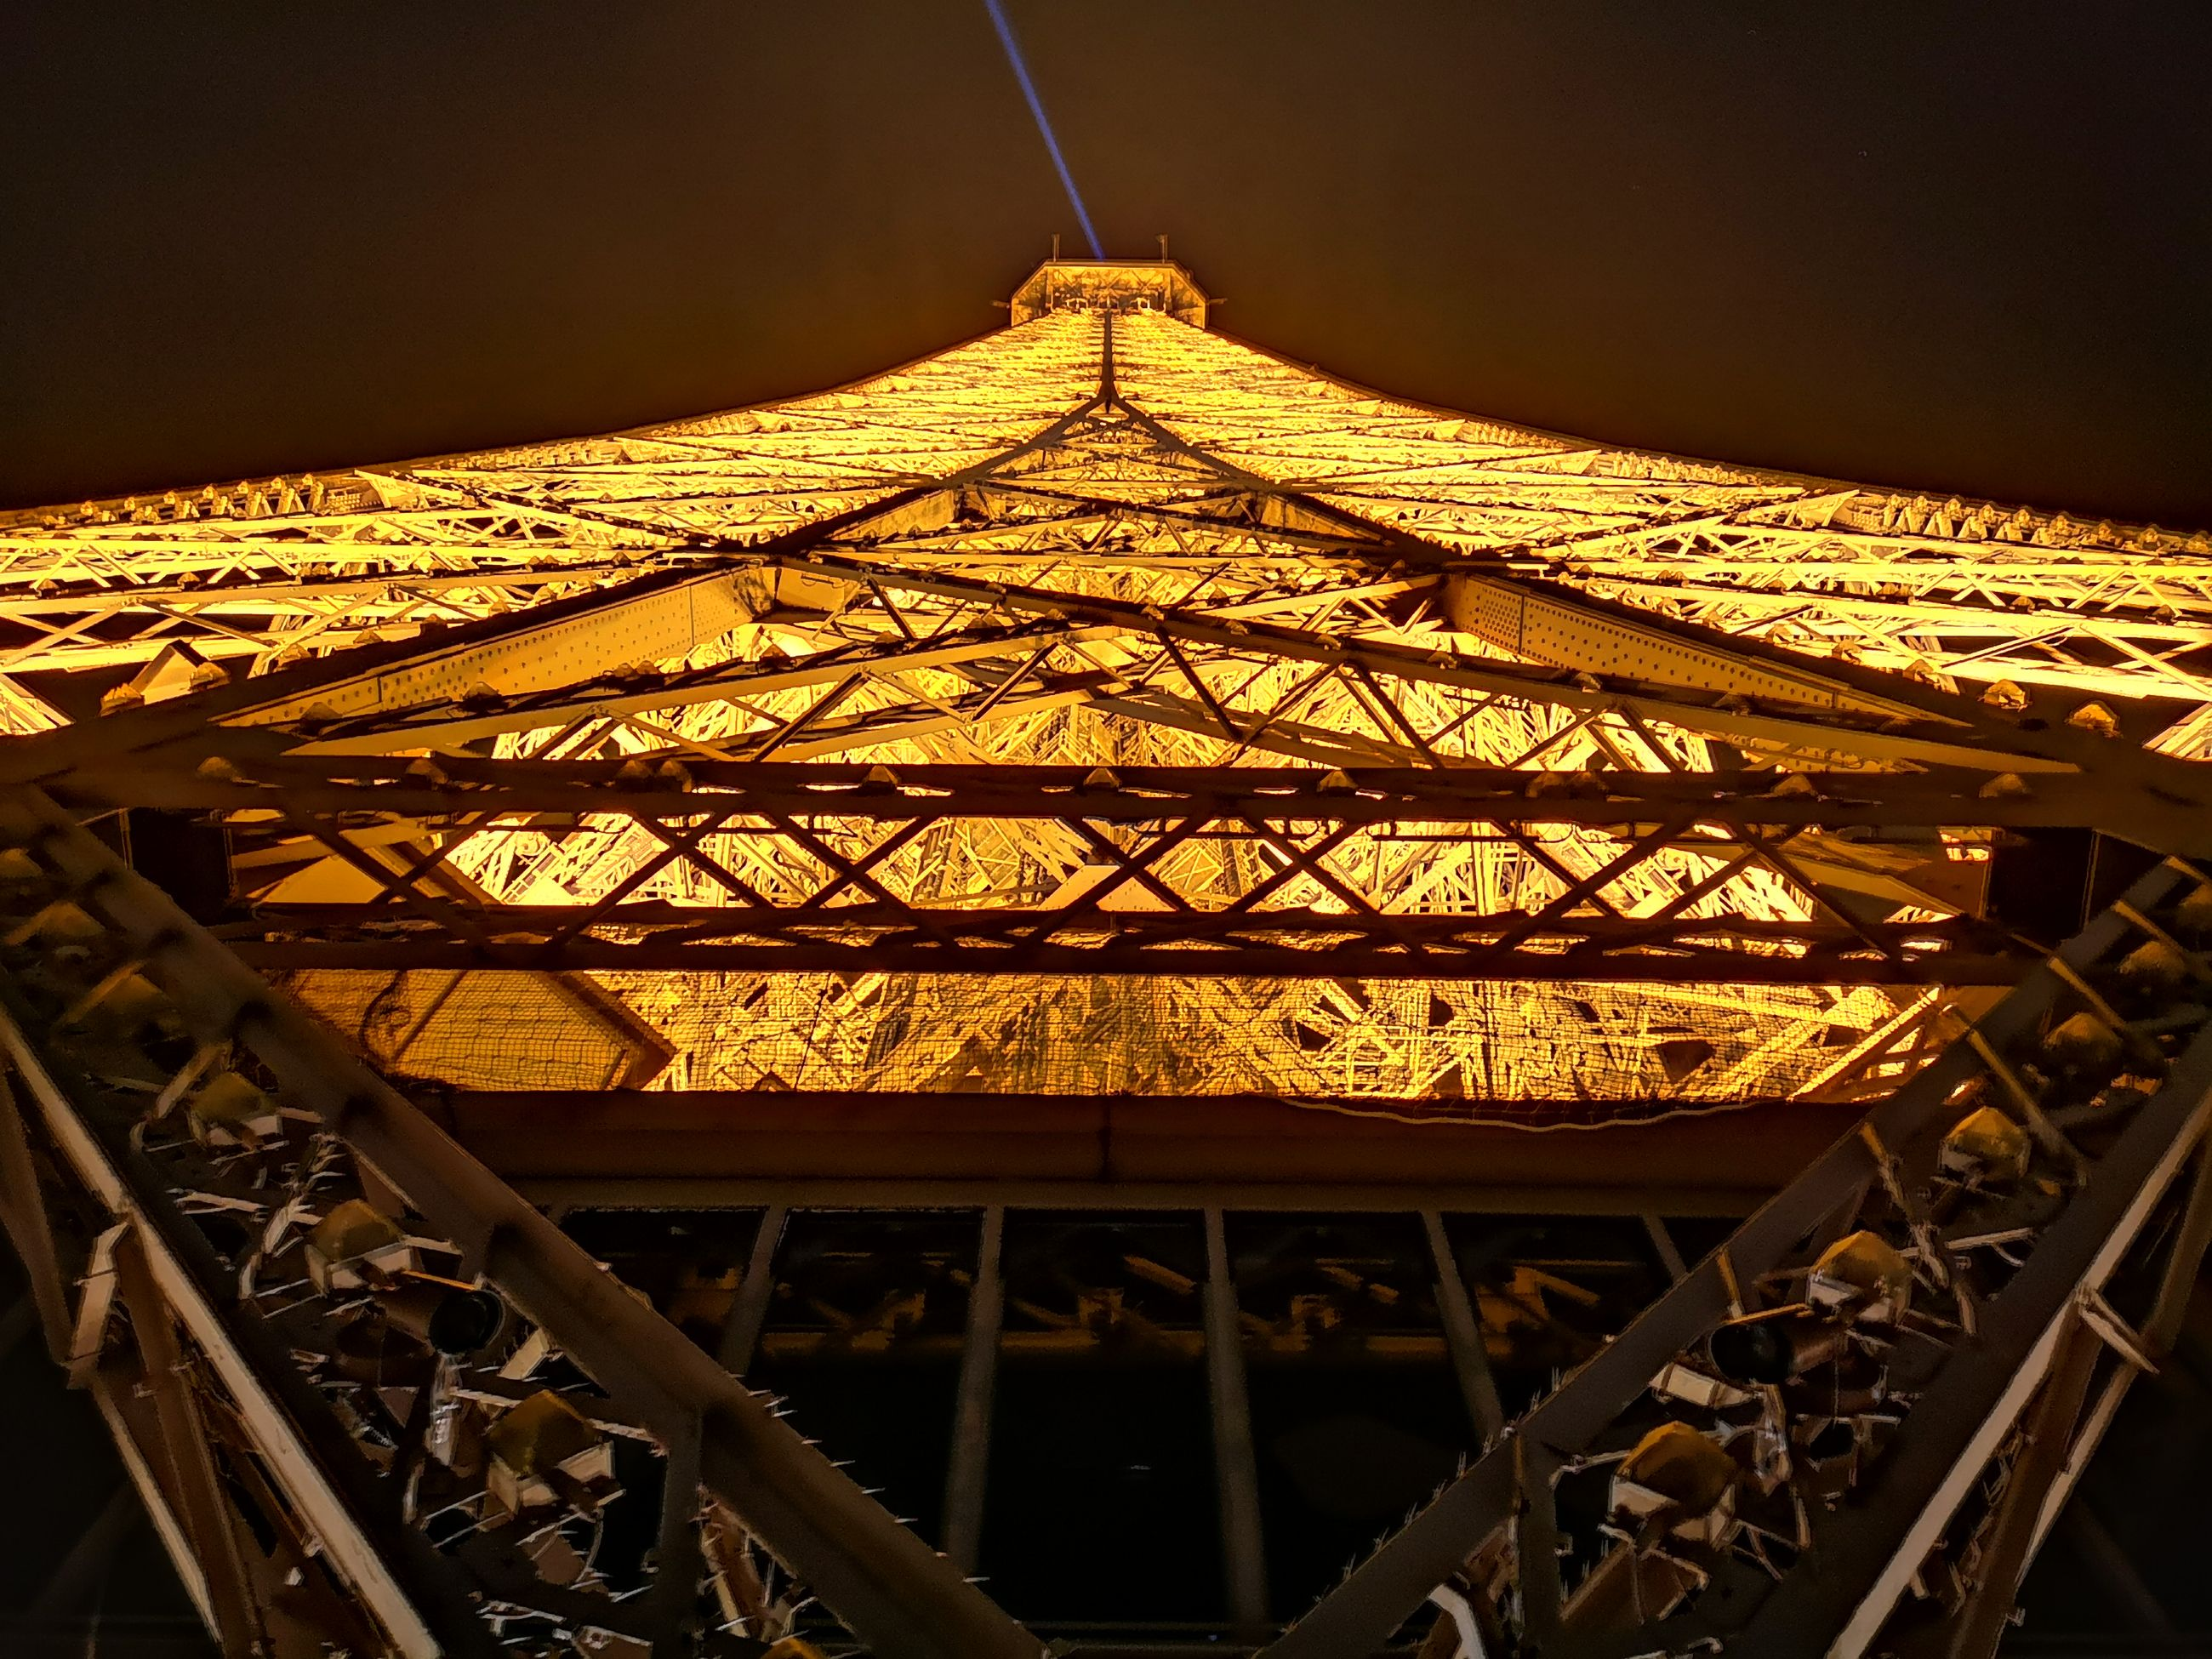 architecture, built structure, illuminated, no people, metal, night, sky, low angle view, building exterior, outdoors, nature, shape, tower, travel destinations, lighting equipment, city, design, building, architectural feature, ceiling